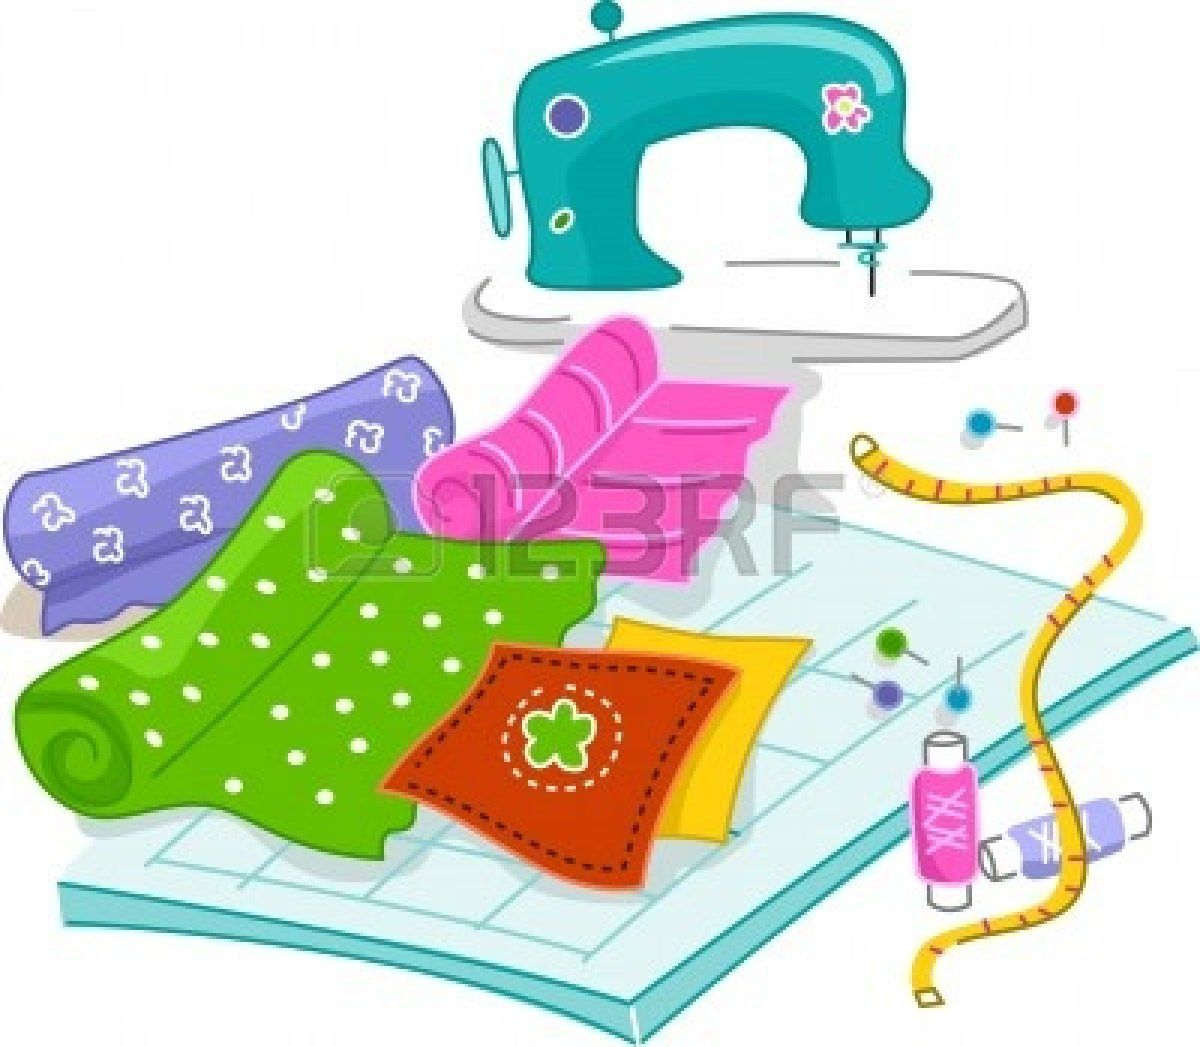 Sewing clipart useful material. Stock illustration little bits